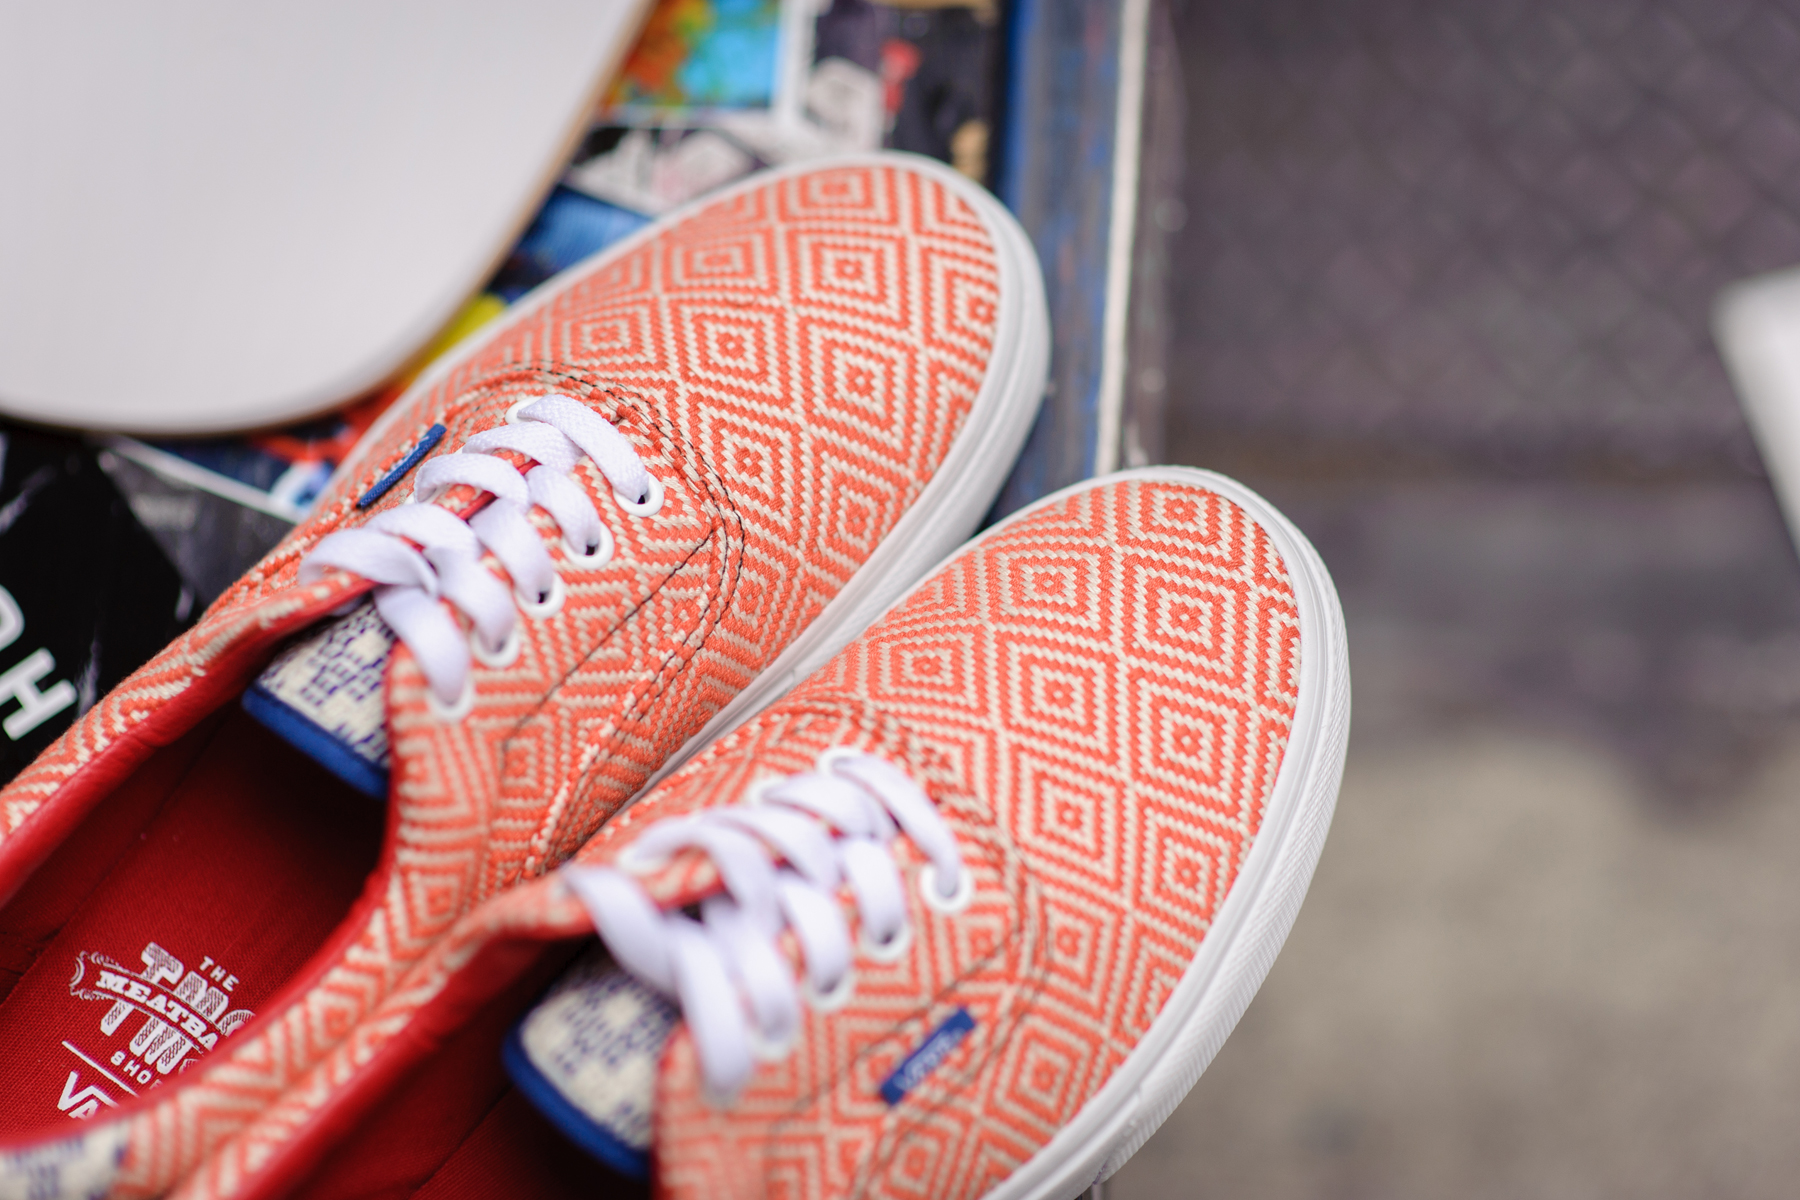 the meatball shop x shut x vans 2014 summer collection